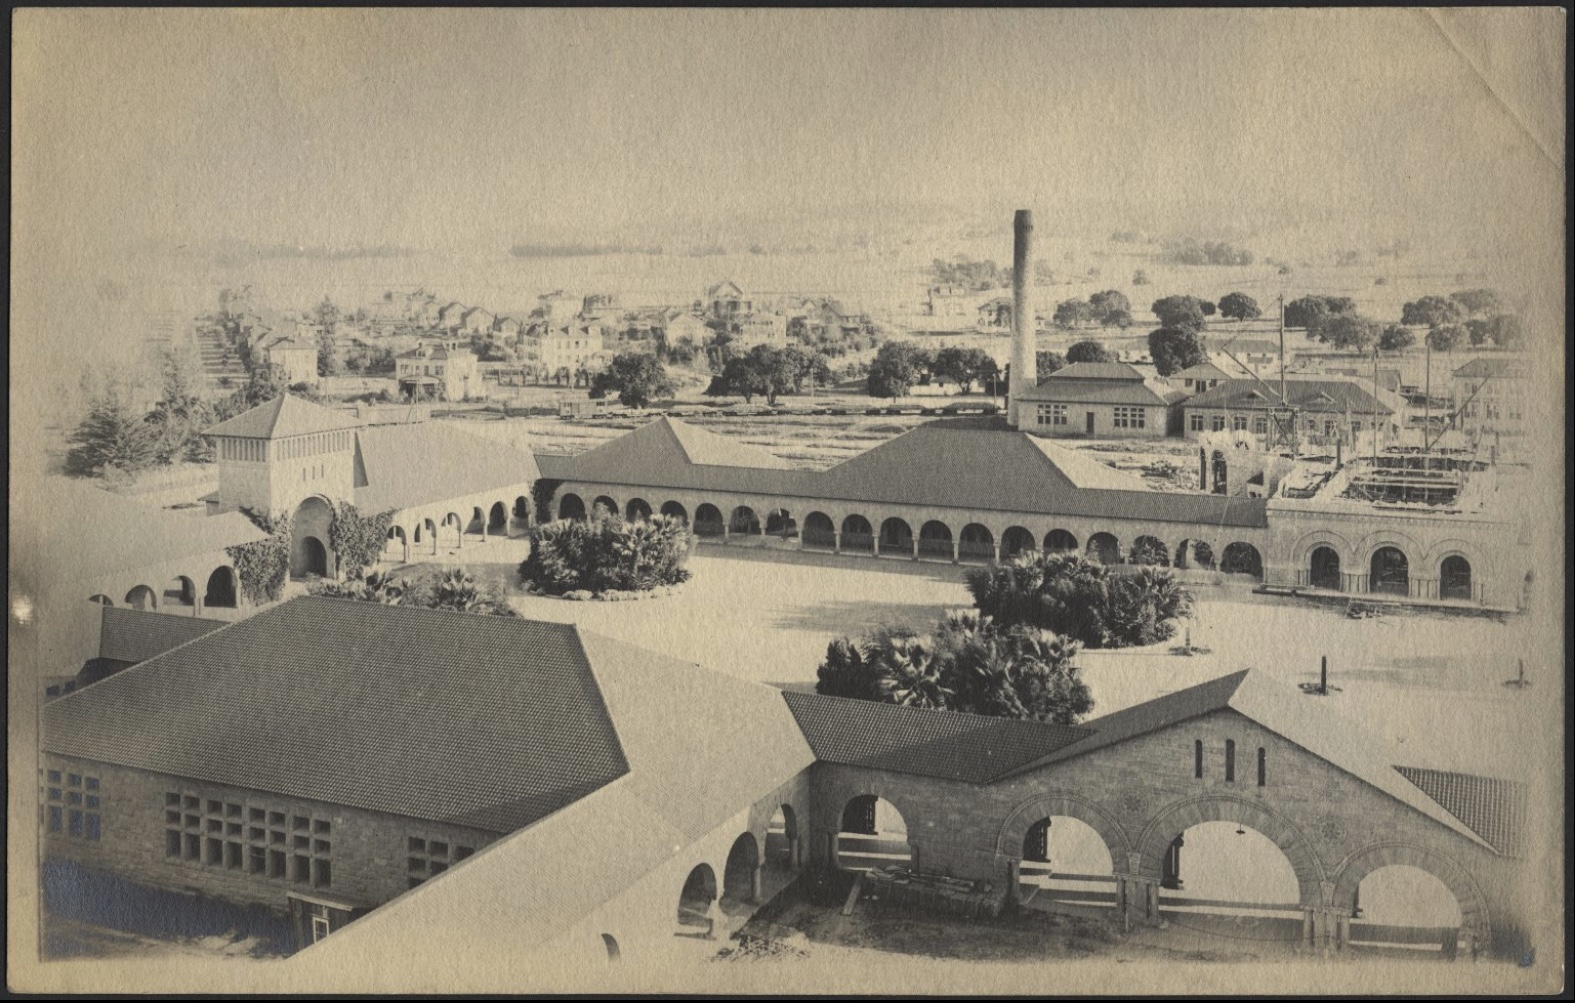 A photo from the 1890s shows the power house, which is the building with the chimney, where Julius Andrew Quelle, then Stanford student, set up his printing shop initially.